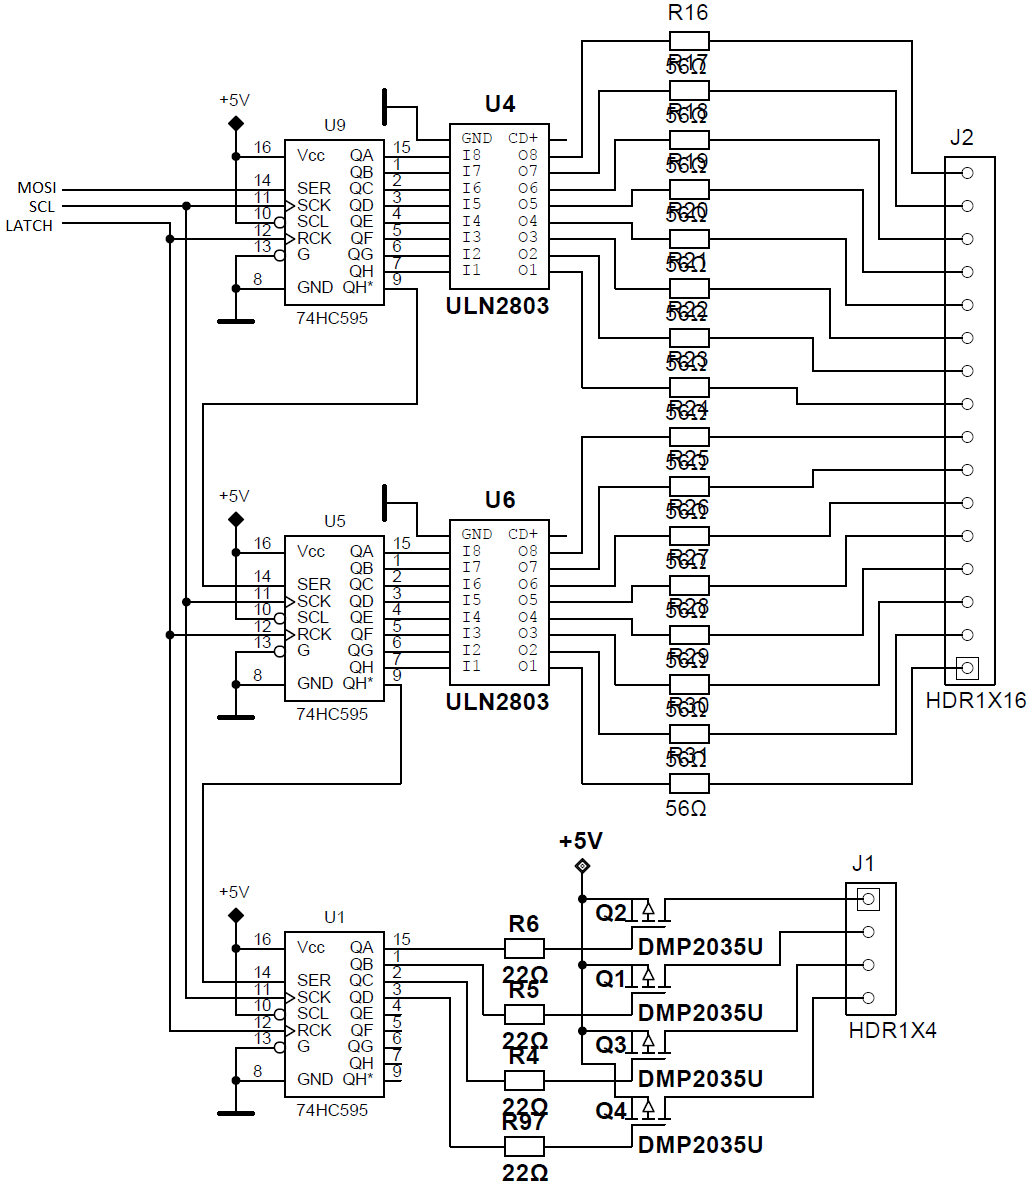 74HC595 Socket besides Interfacing Keyboard Atmega8 additionally 325631 together with Postimg 3108688 further 4 Digit Counter Circuit Schematic. on multiplexing arduino 74hc595